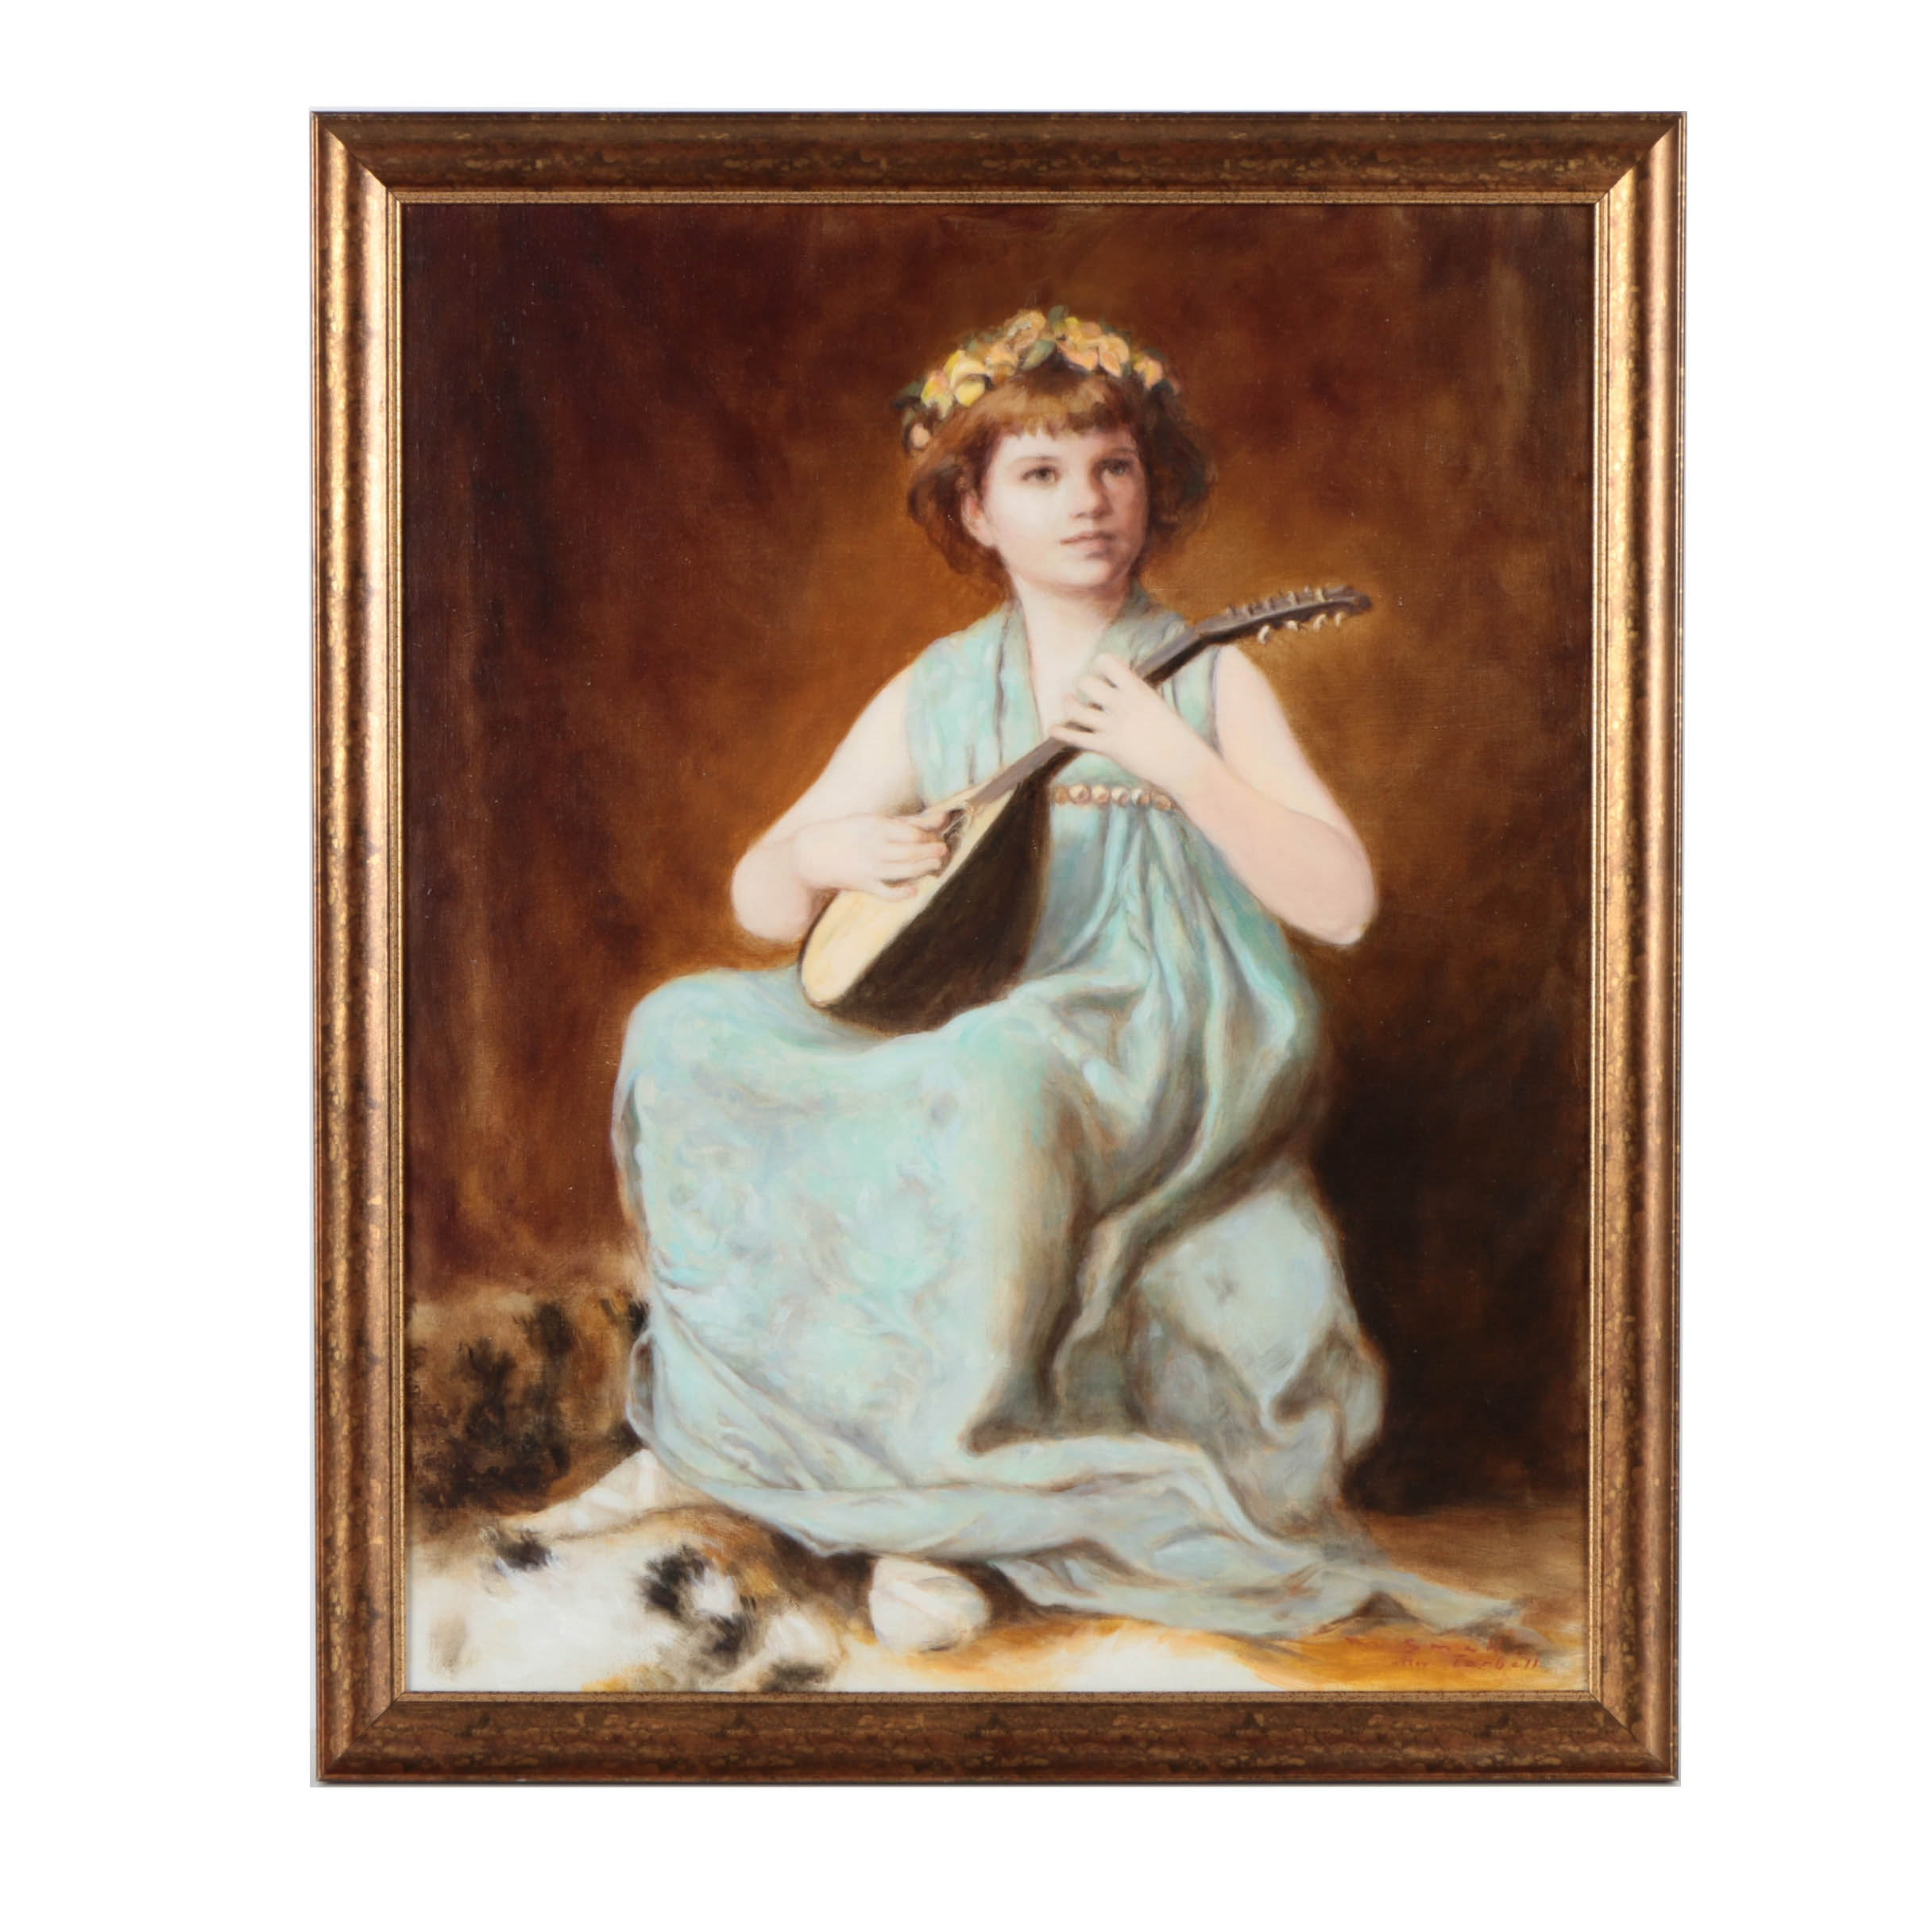 M. Small Copy Painting After Edmund Charles Tarbell